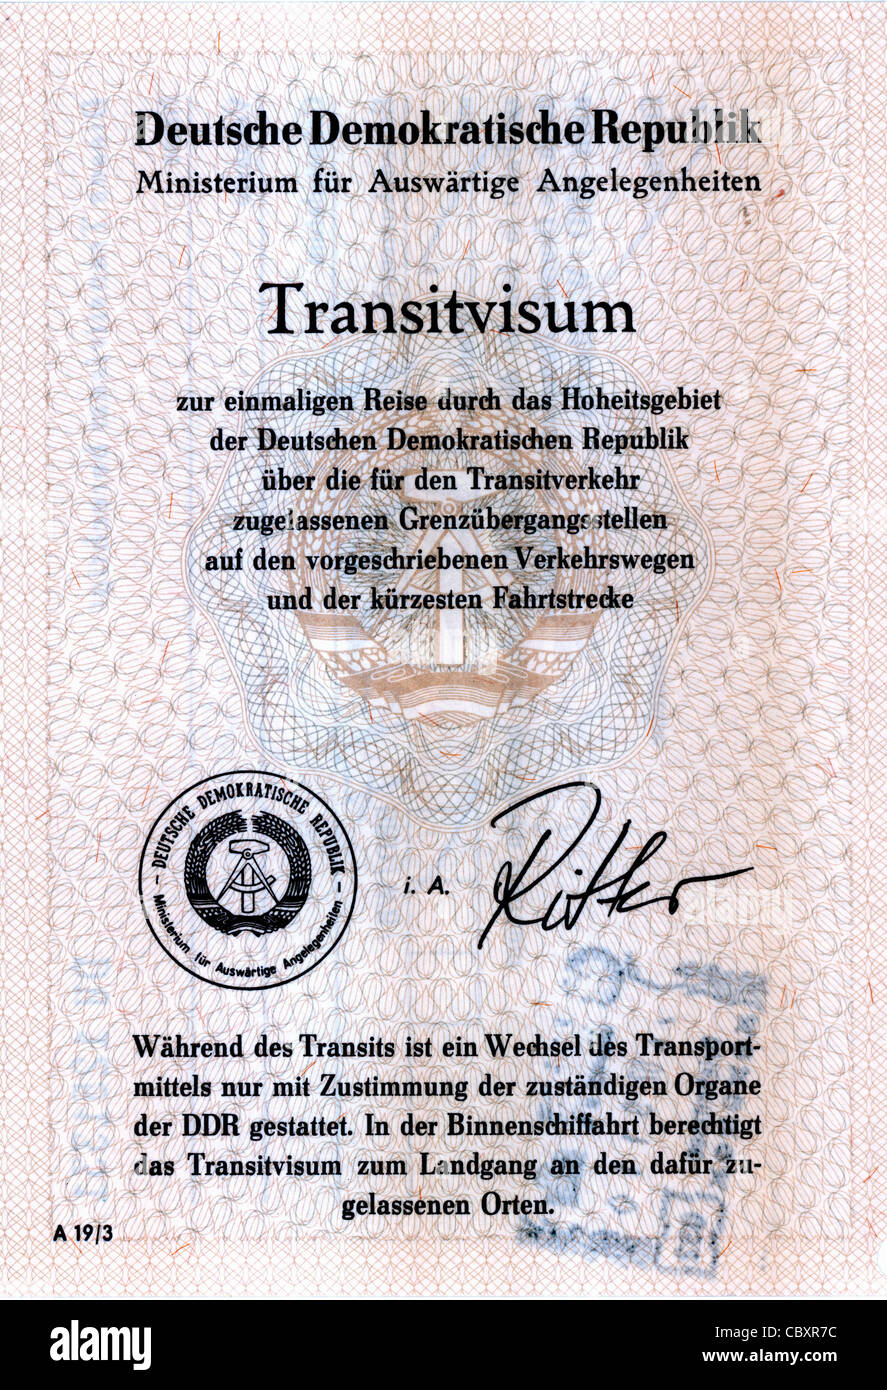 Transit visa of the German Democratic Republic for a journey on the transit ways through the GDR. - Stock Image